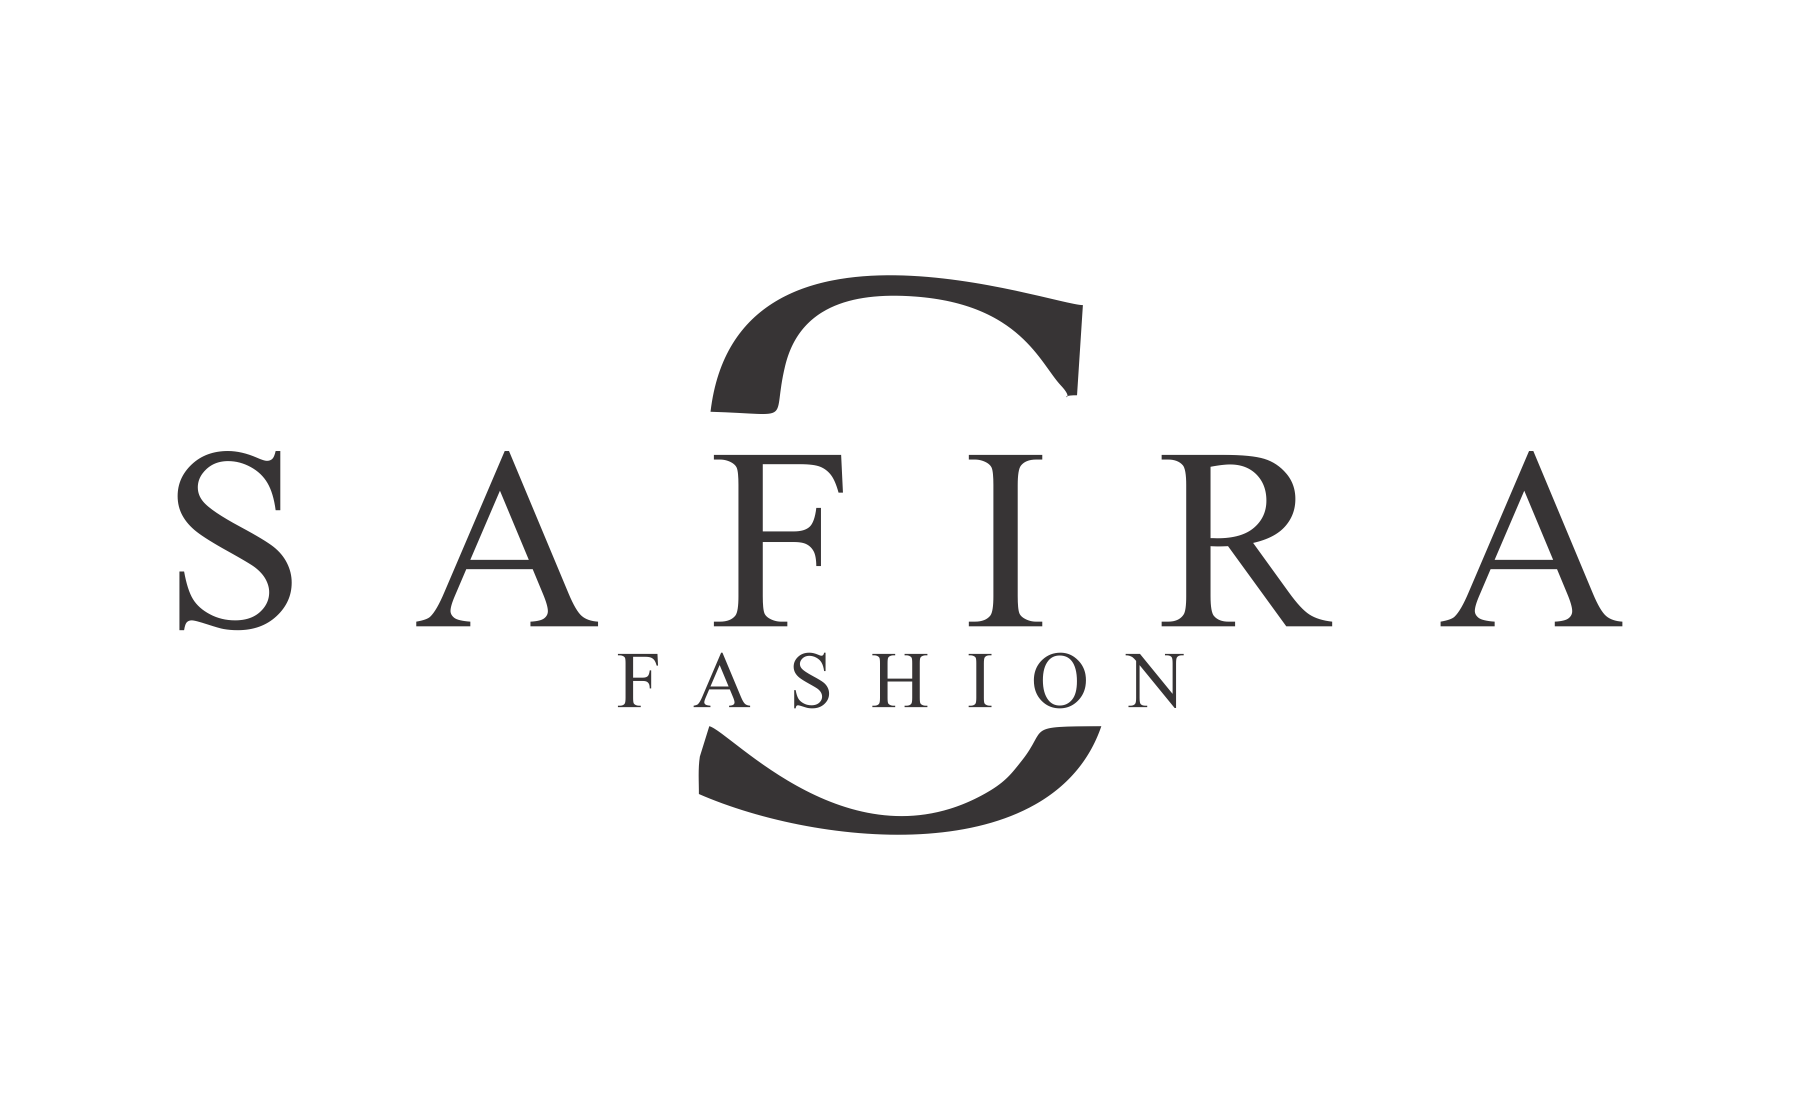 SAFIRA Fashion : Brand Short Description Type Here.